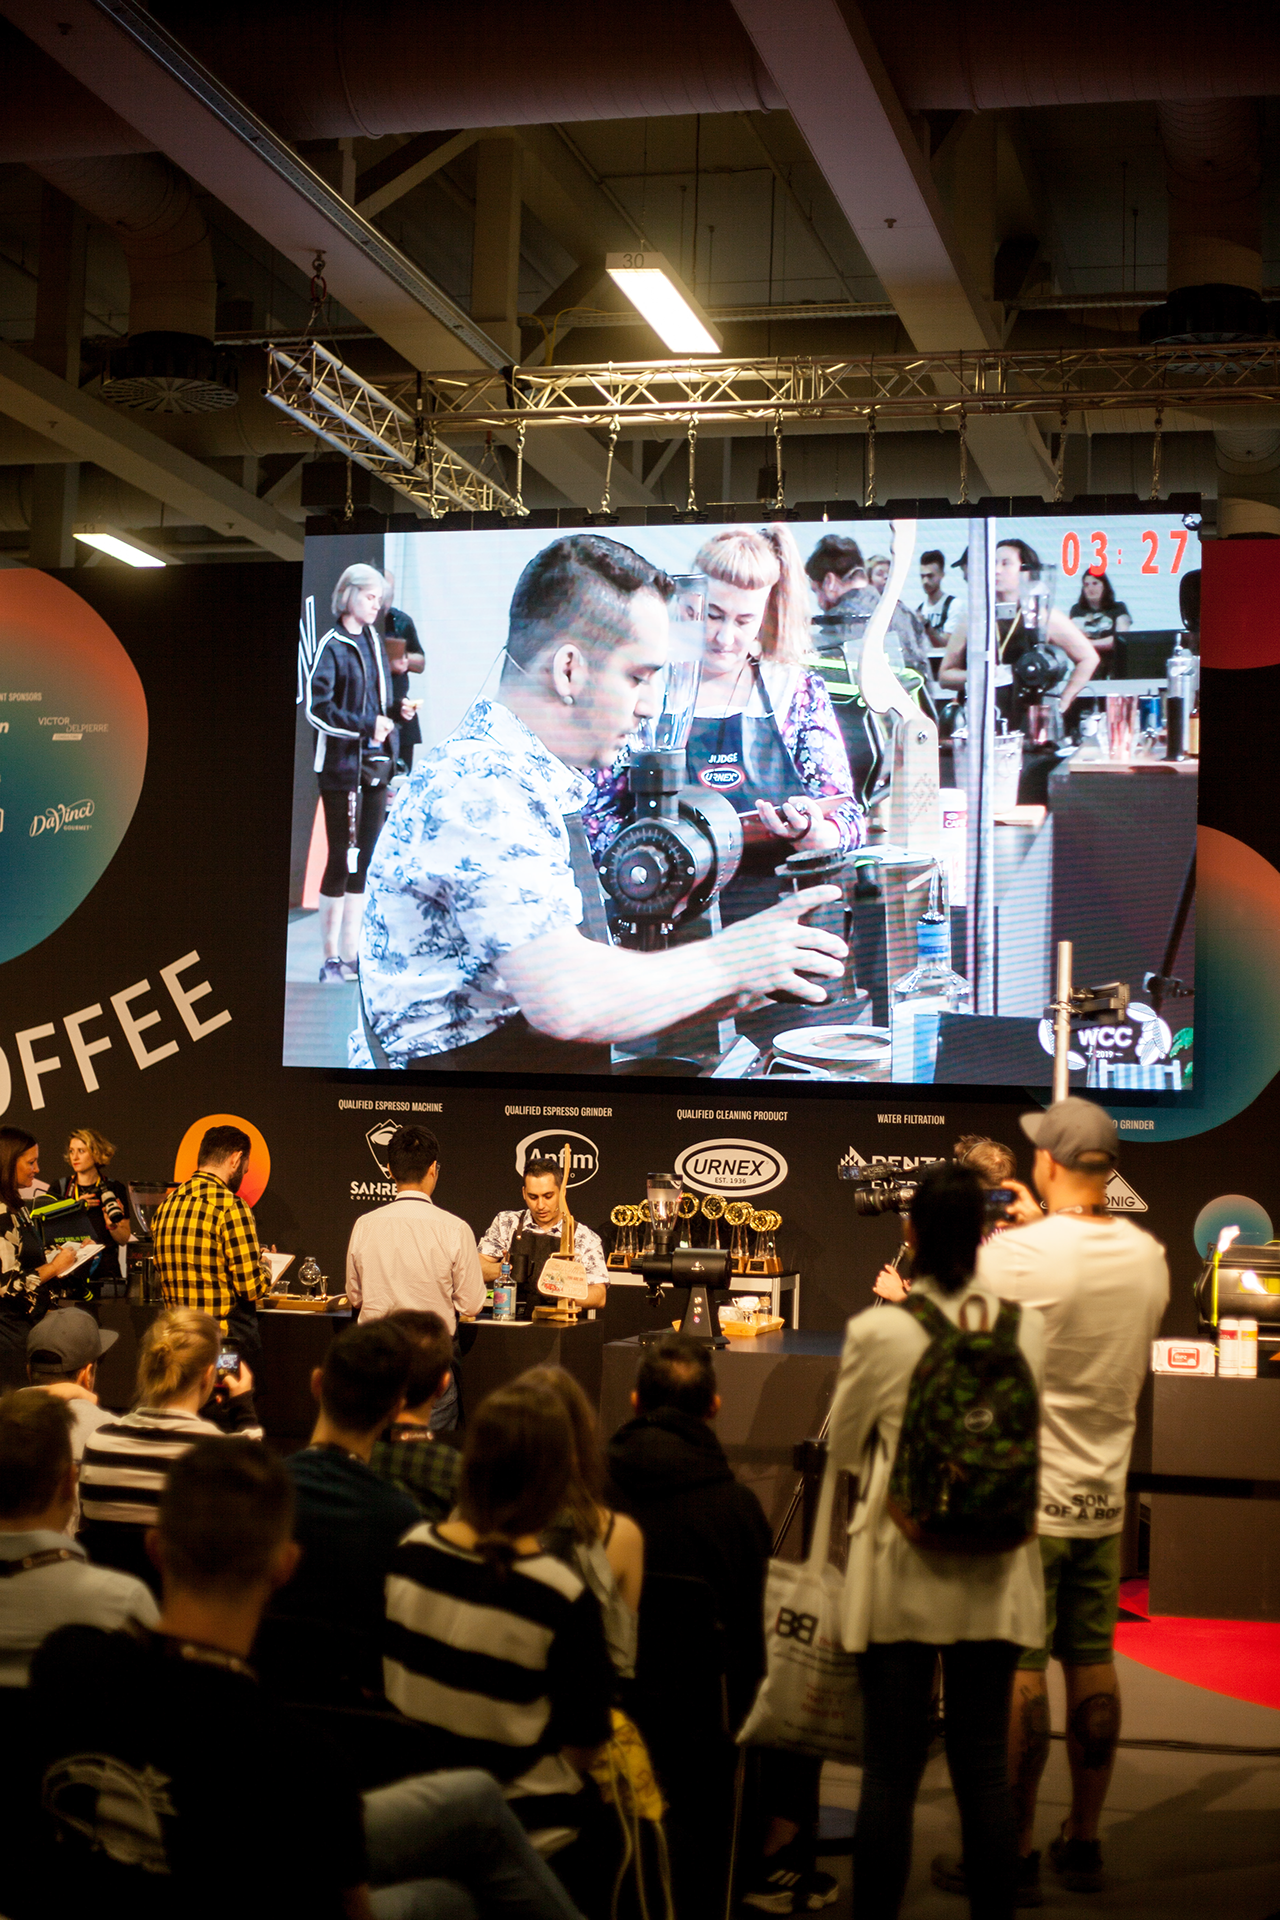 A lot of people at one of the four coffee championships